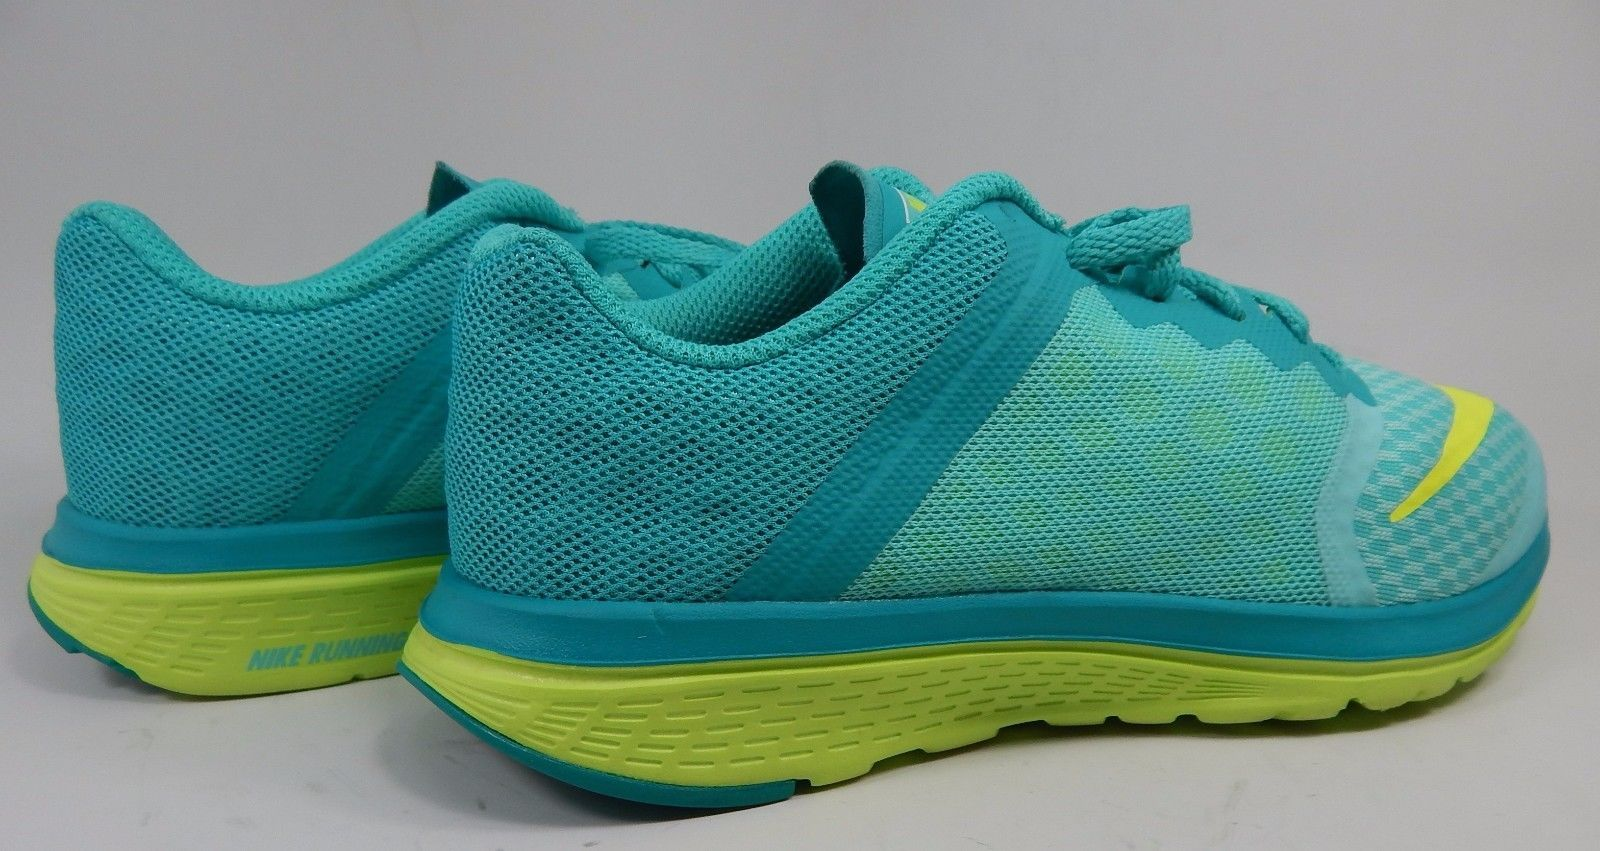 Nike FS Lite Run 3 Women's Running Shoes Size US 7 M (B) EU 38 Green 807145-300